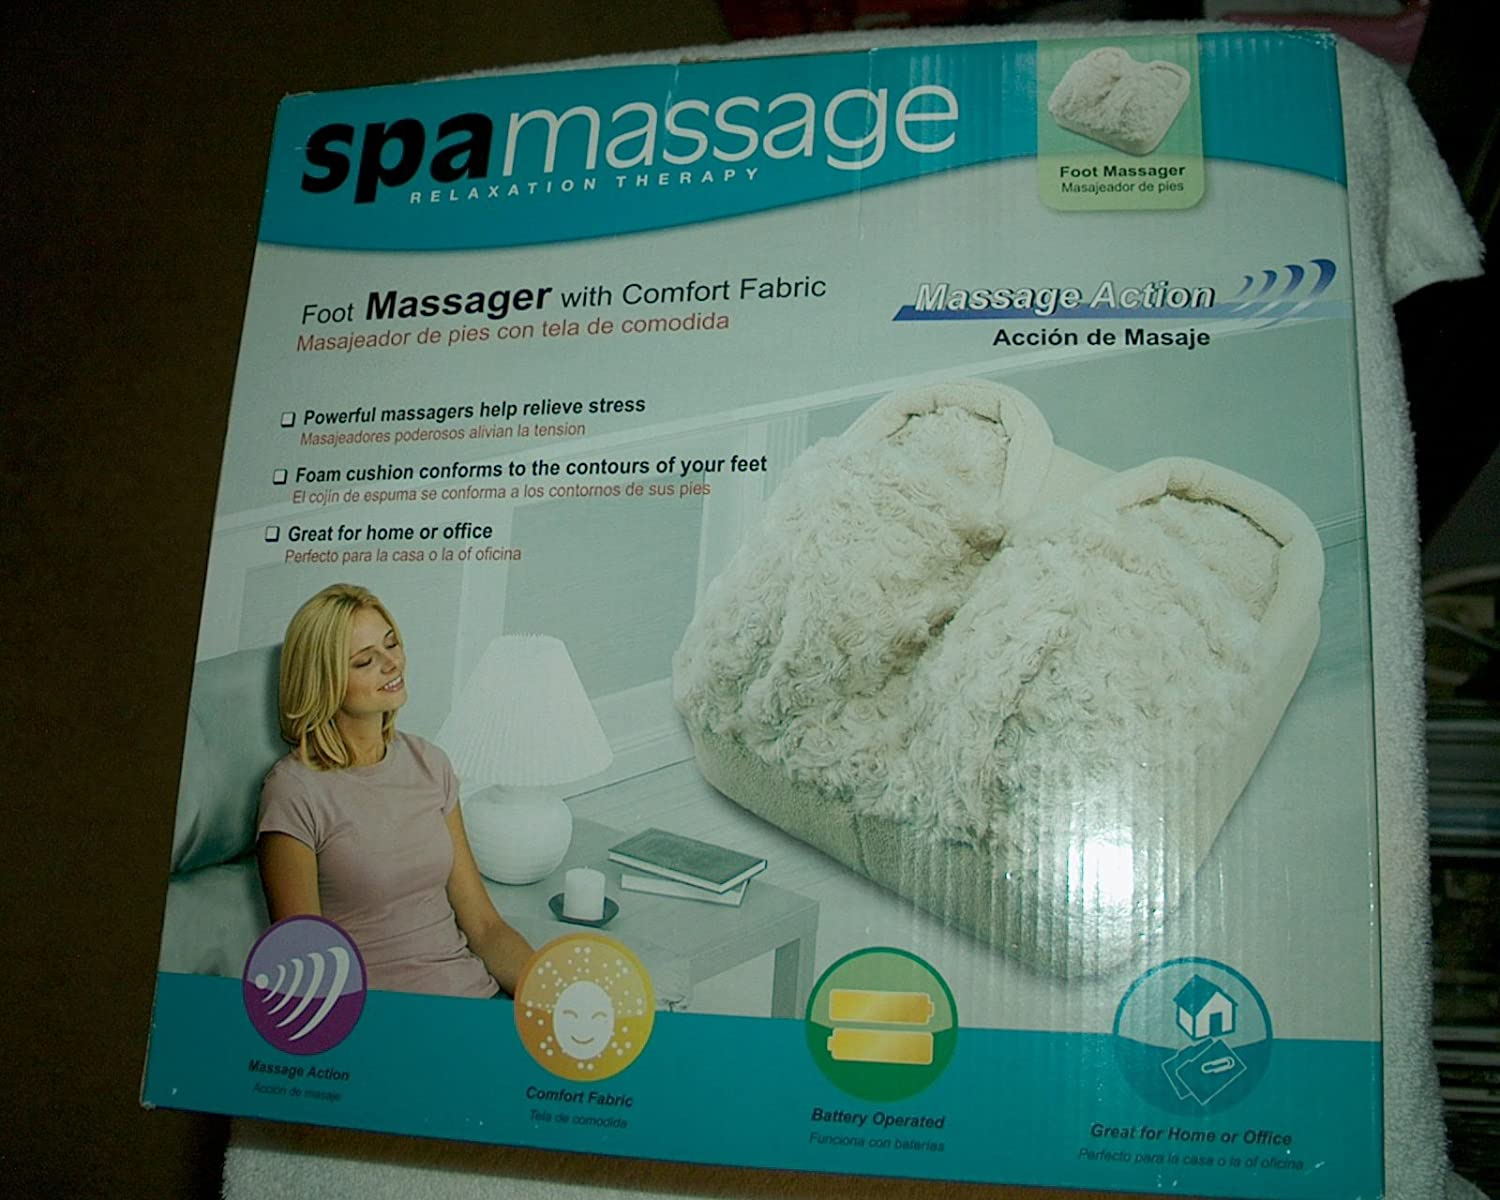 Amazon.com: Spa Massage Relaxation Therapy Foot Massager ...